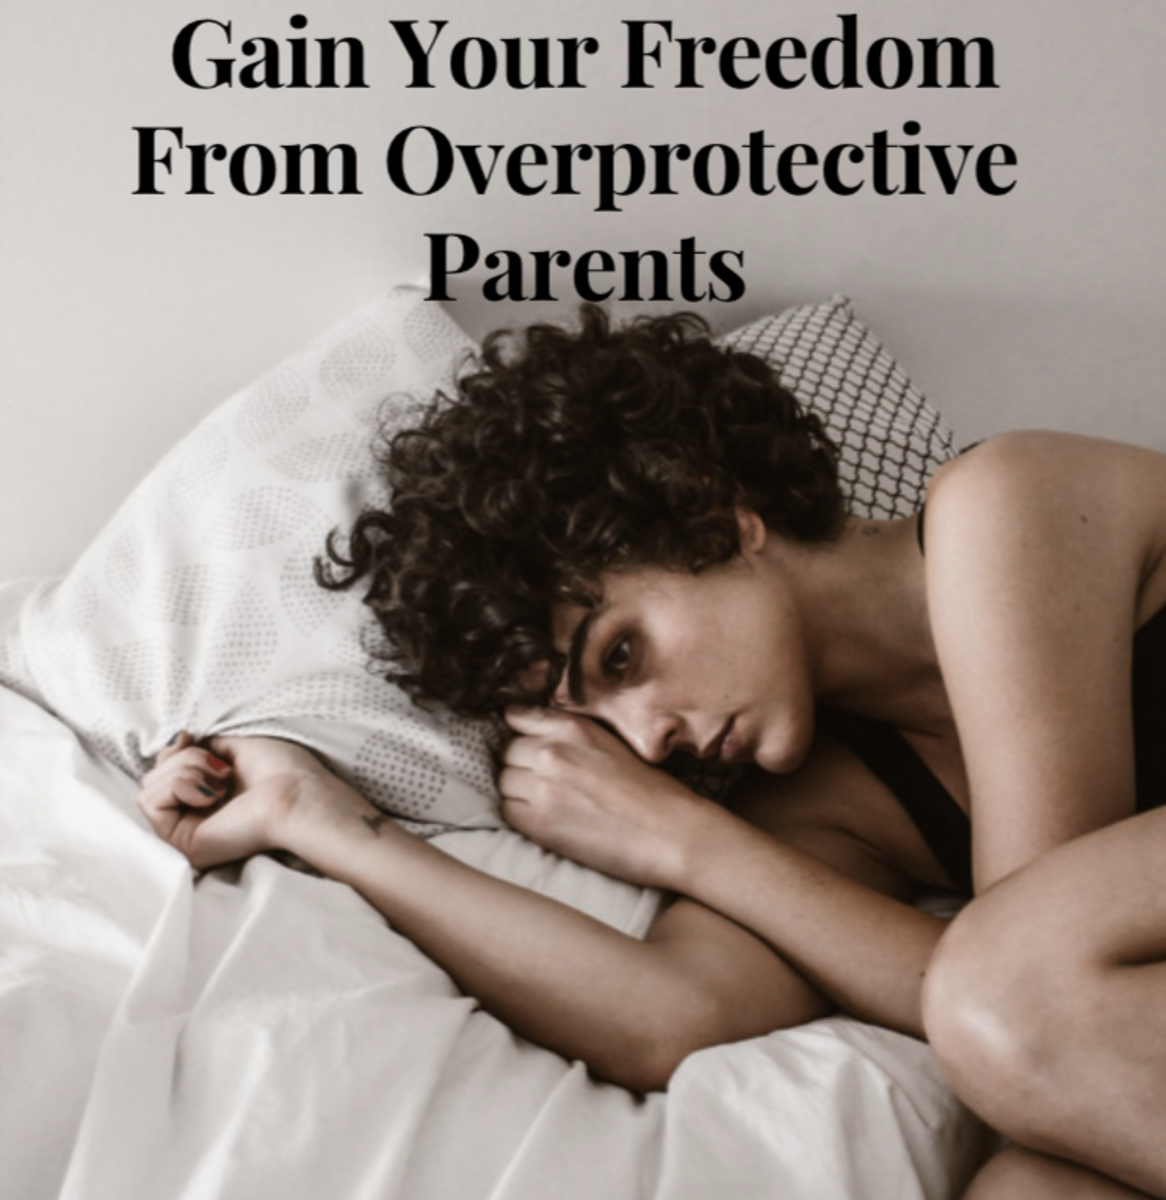 How to Deal With Overprotective Parents and Gain Your Freedom